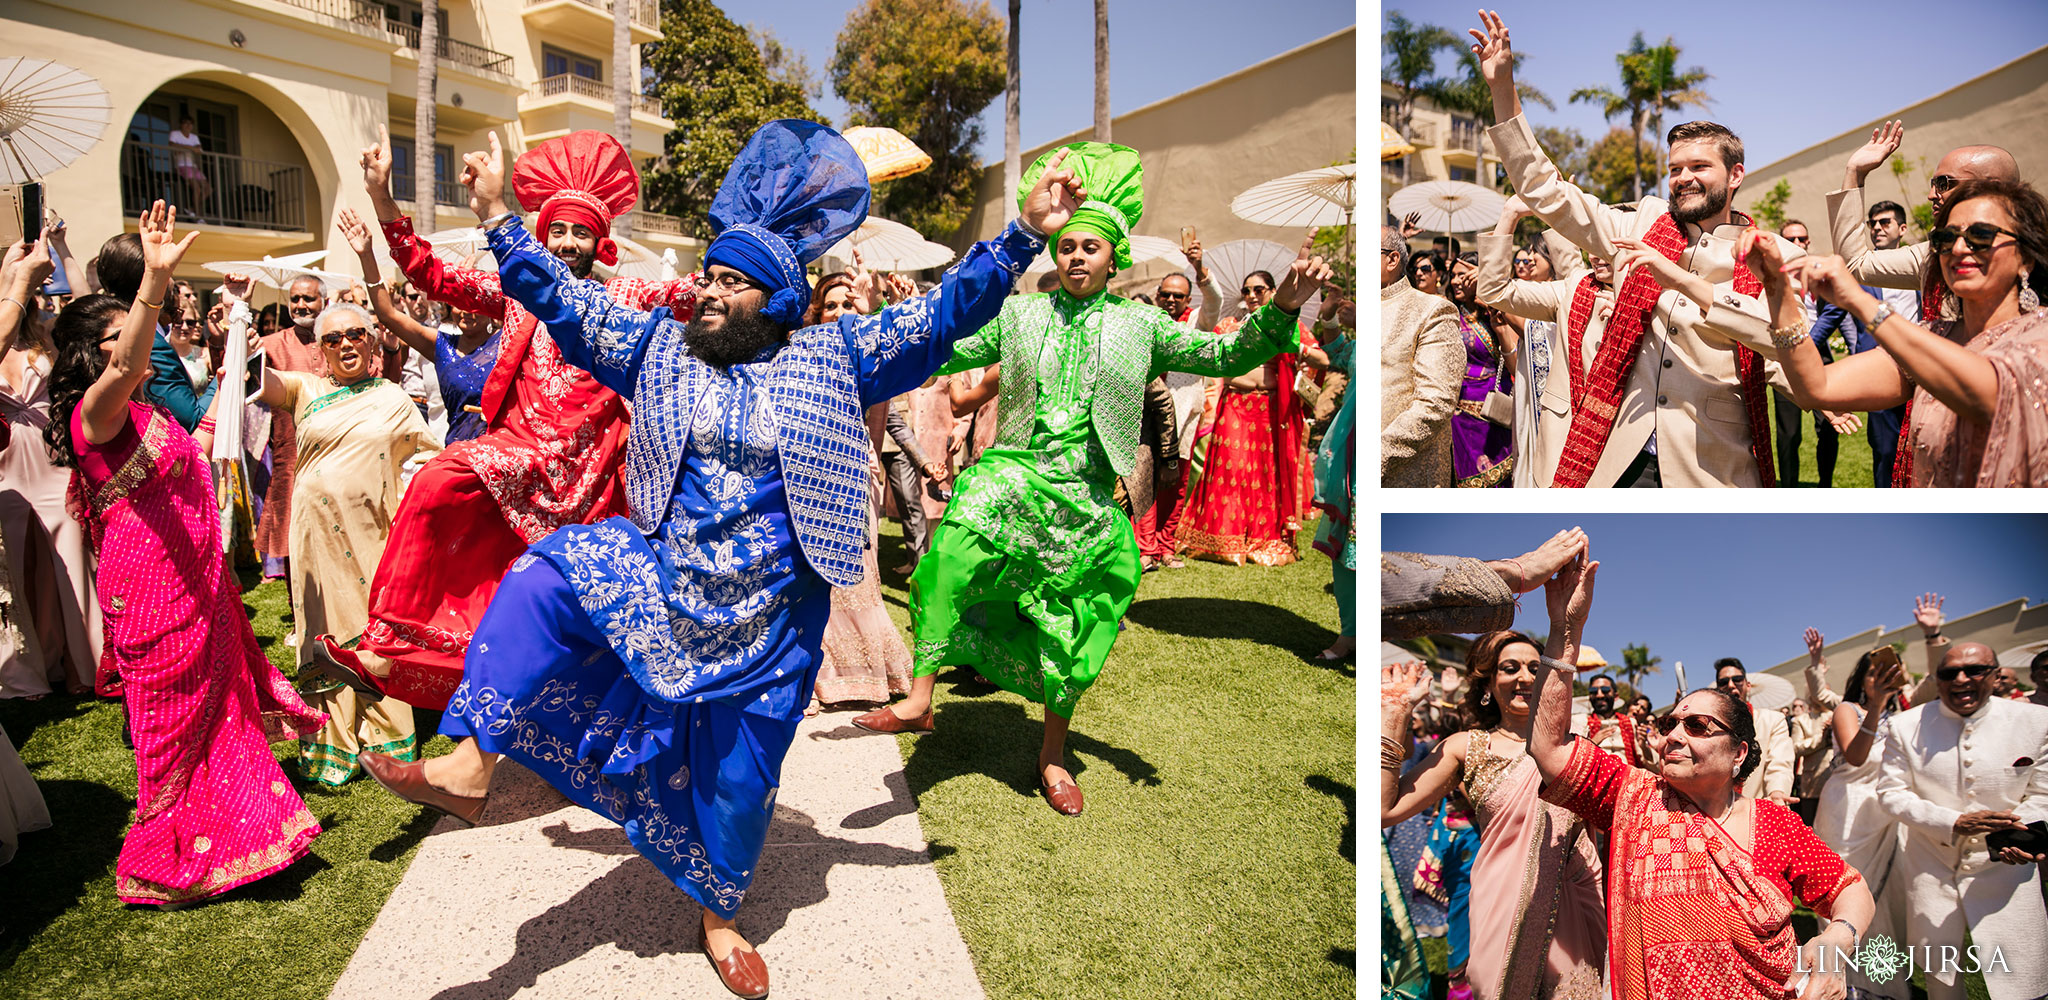 009 ritz carlton laguna niguel indian baraat bhangra wedding photography